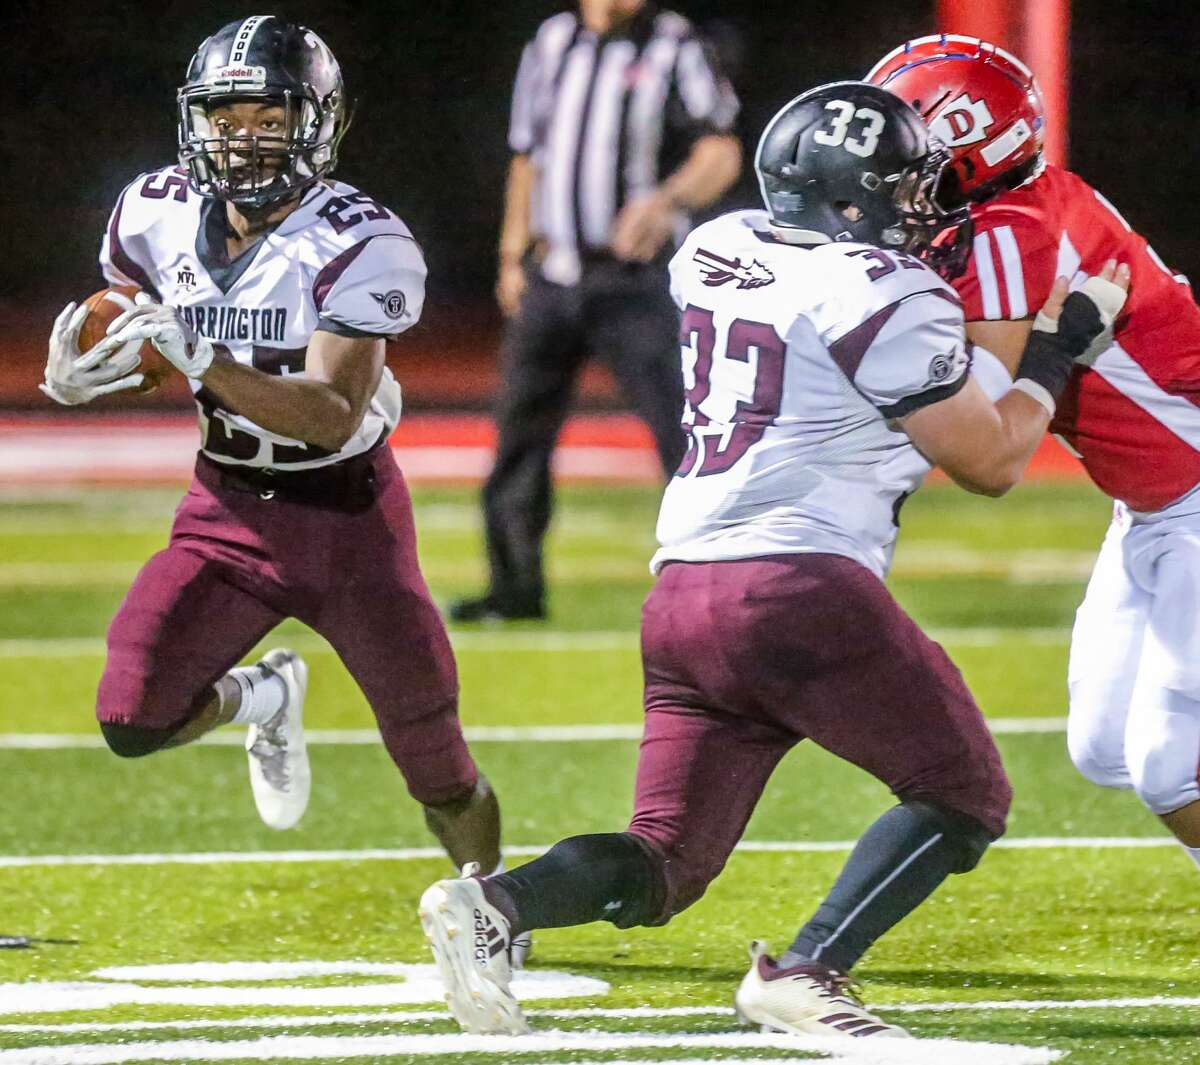 (John Vanacore/For Hearst Connecticut Media) The Red Raiders of Derby played host to the Red Raiders of Torrington Friday, Septermber 20, 2019. The game was the first under the lights on the all new DeFillipo Field.